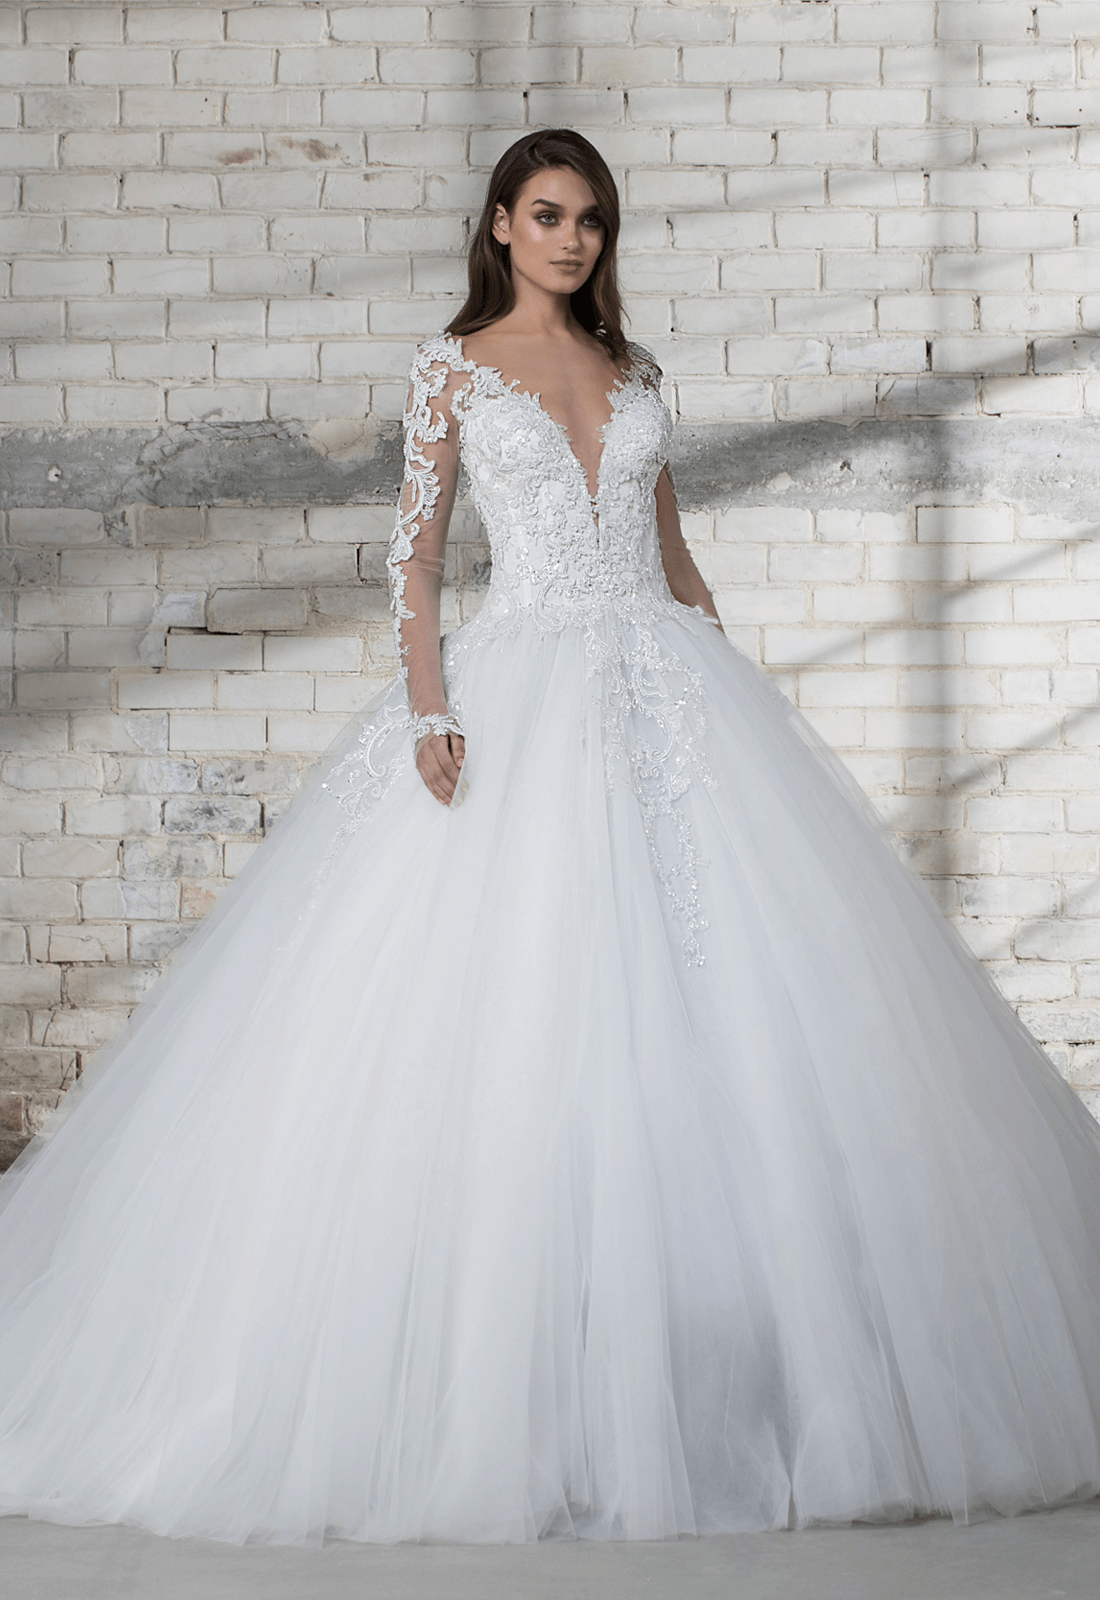 Style No 14670 Most Expensive Wedding Dress Pnina Tornai Wedding Dress Expensive Wedding Dress